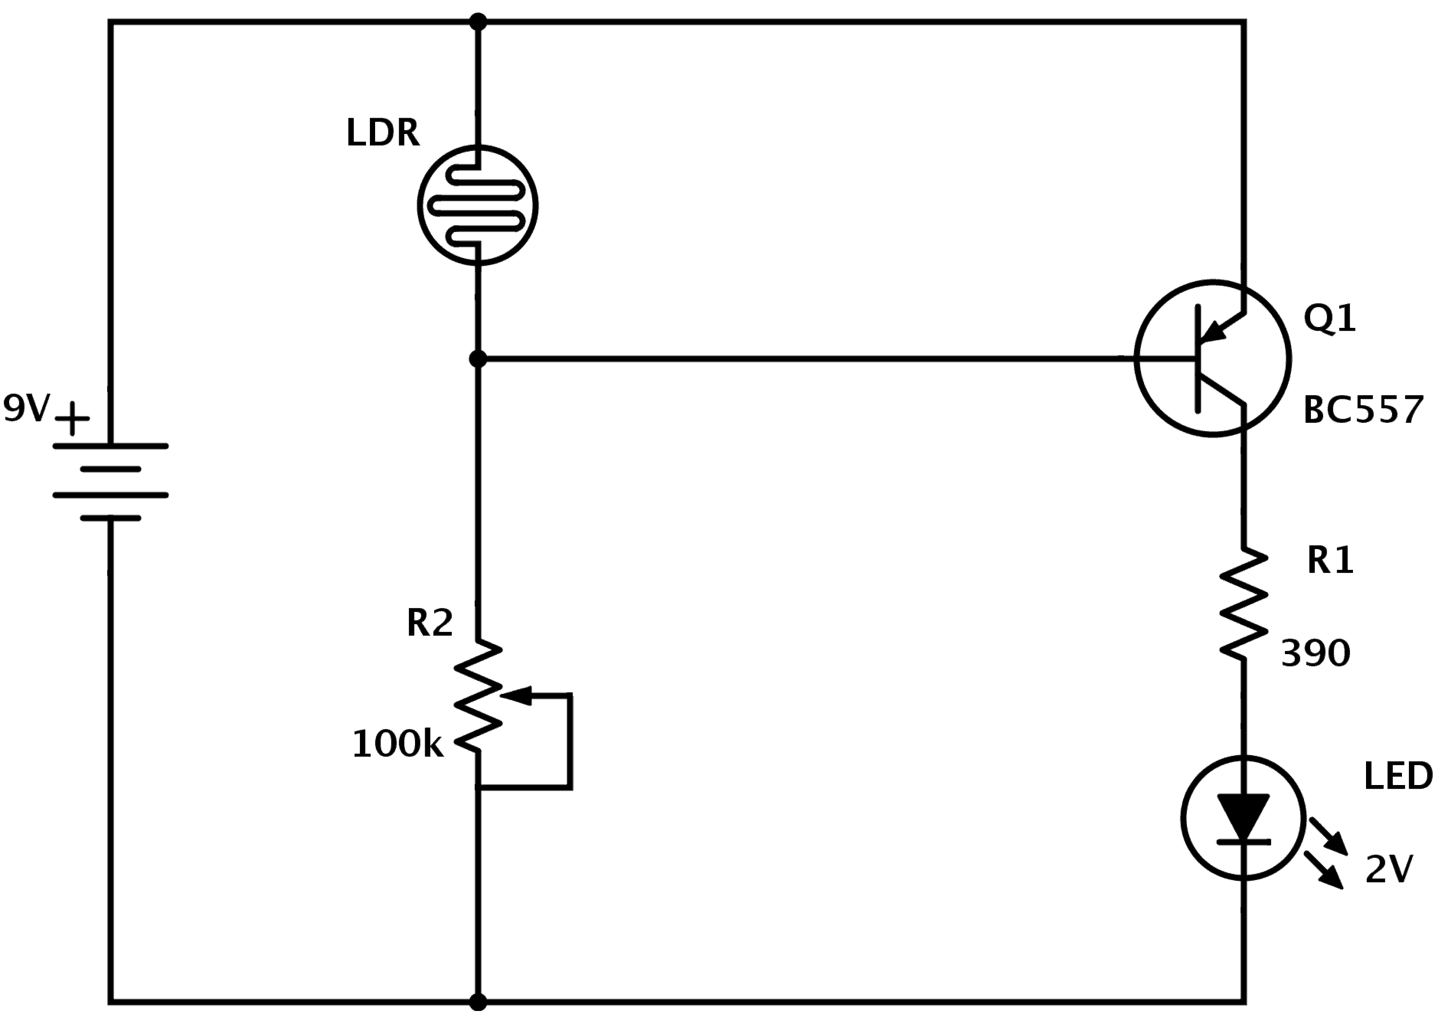 Ldr Circuit Diagram Build Electronic Circuits Wiring Lights In Series Or Parallel Further With Pnp Transistor Dark Detector